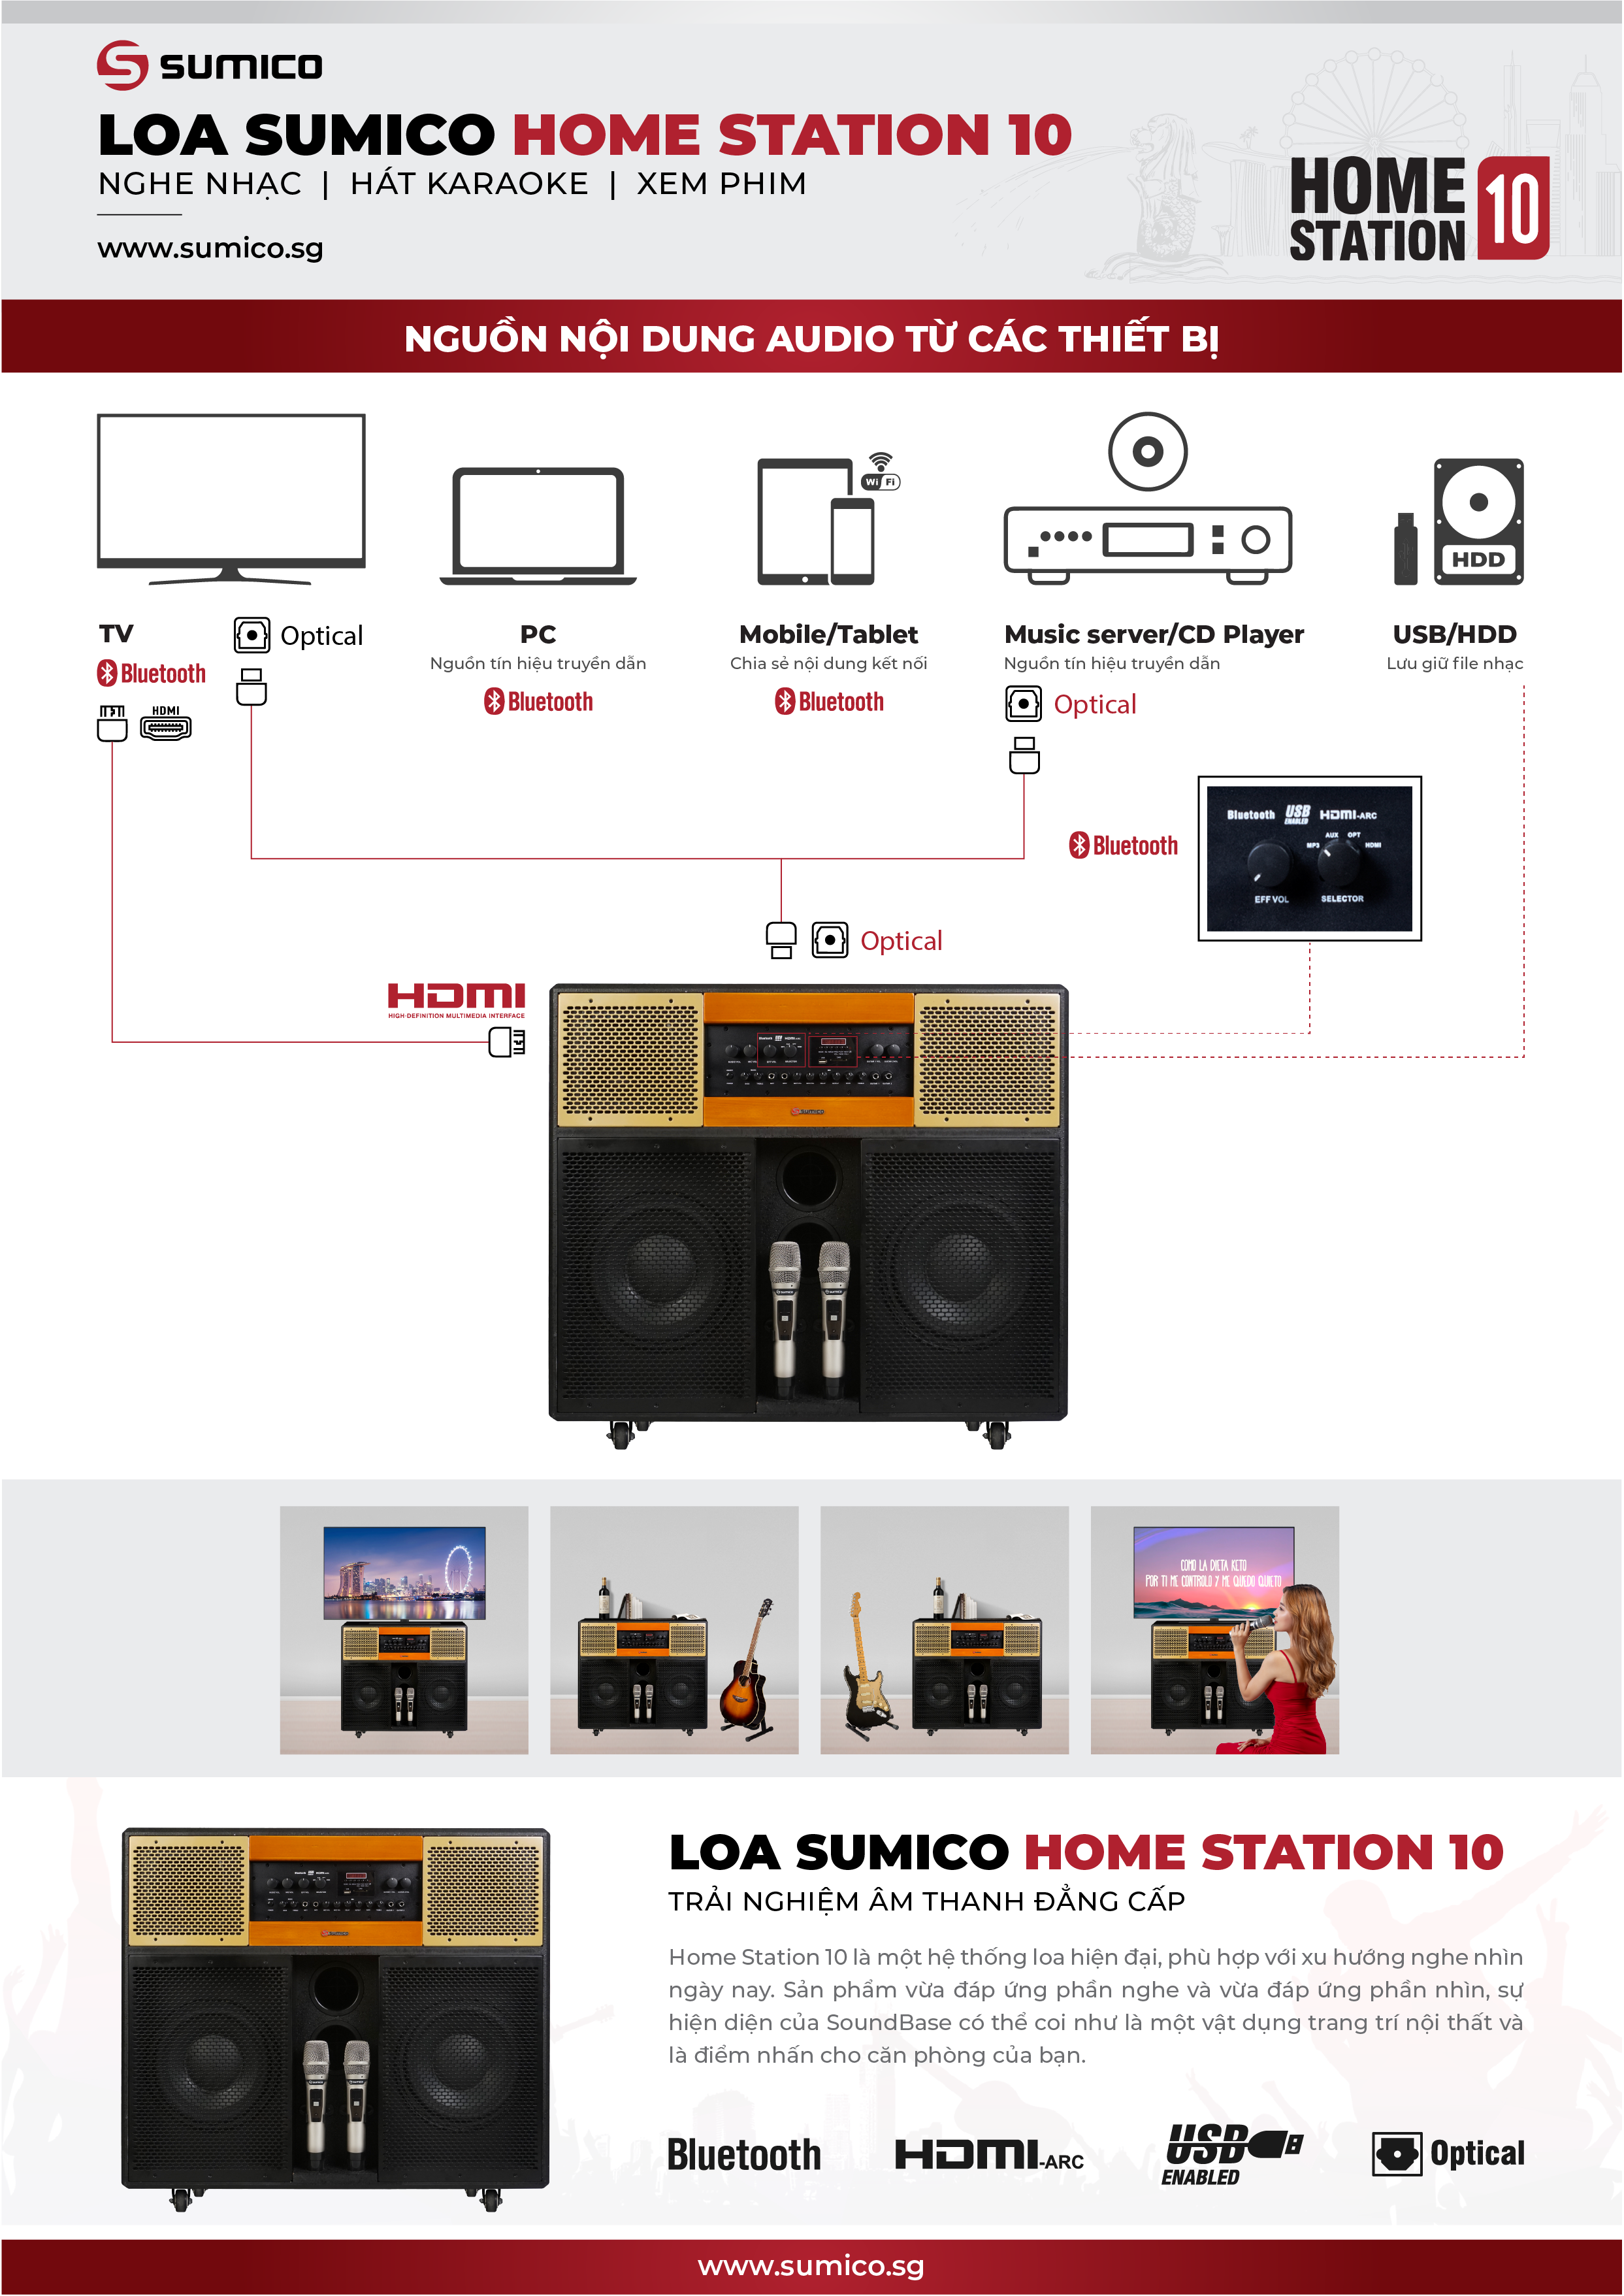 Sumico Home Station 10 | Anh Duy Audio